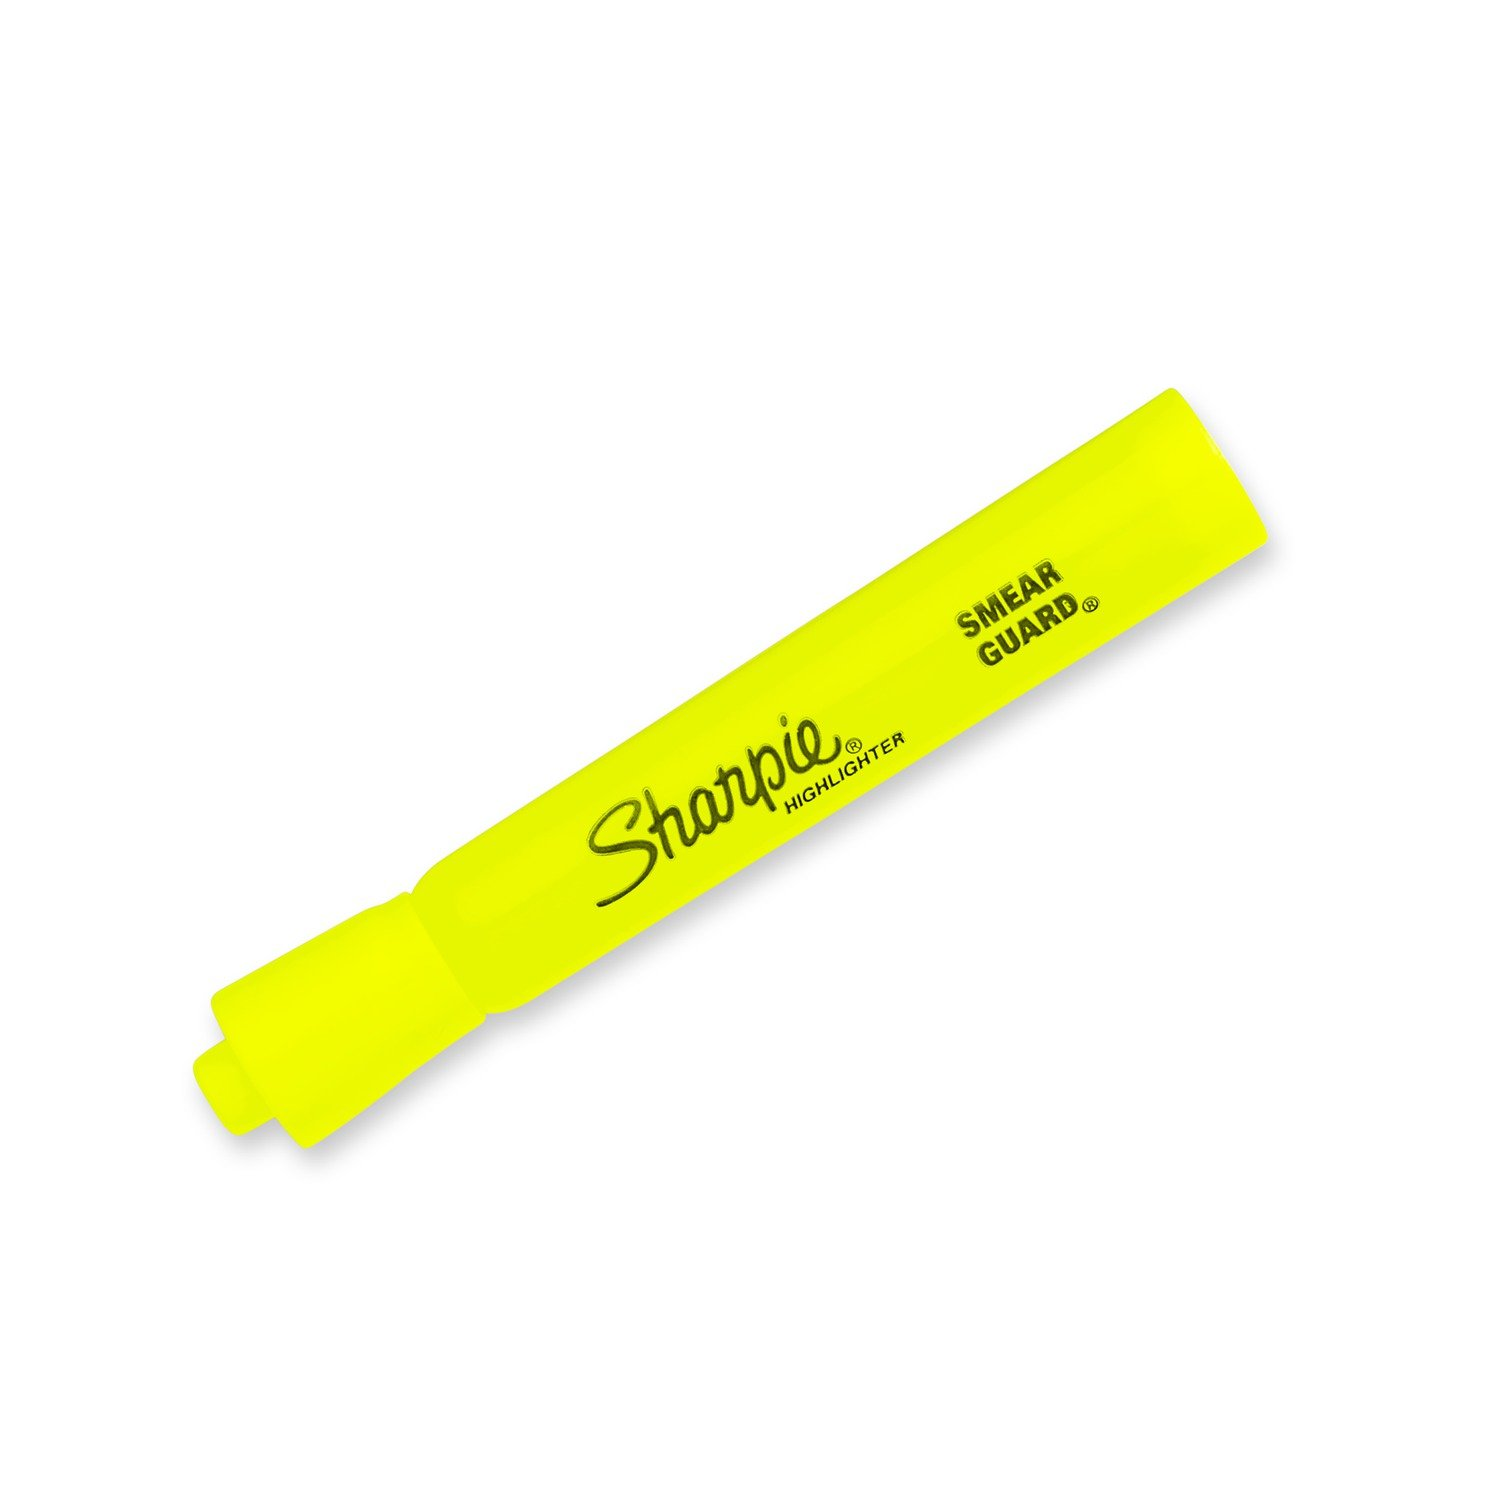 Sharpie 25025 Tank Highlighters, Chisel Tip, Fluorescent Yellow, 12-Count by Sharpie (Image #4)